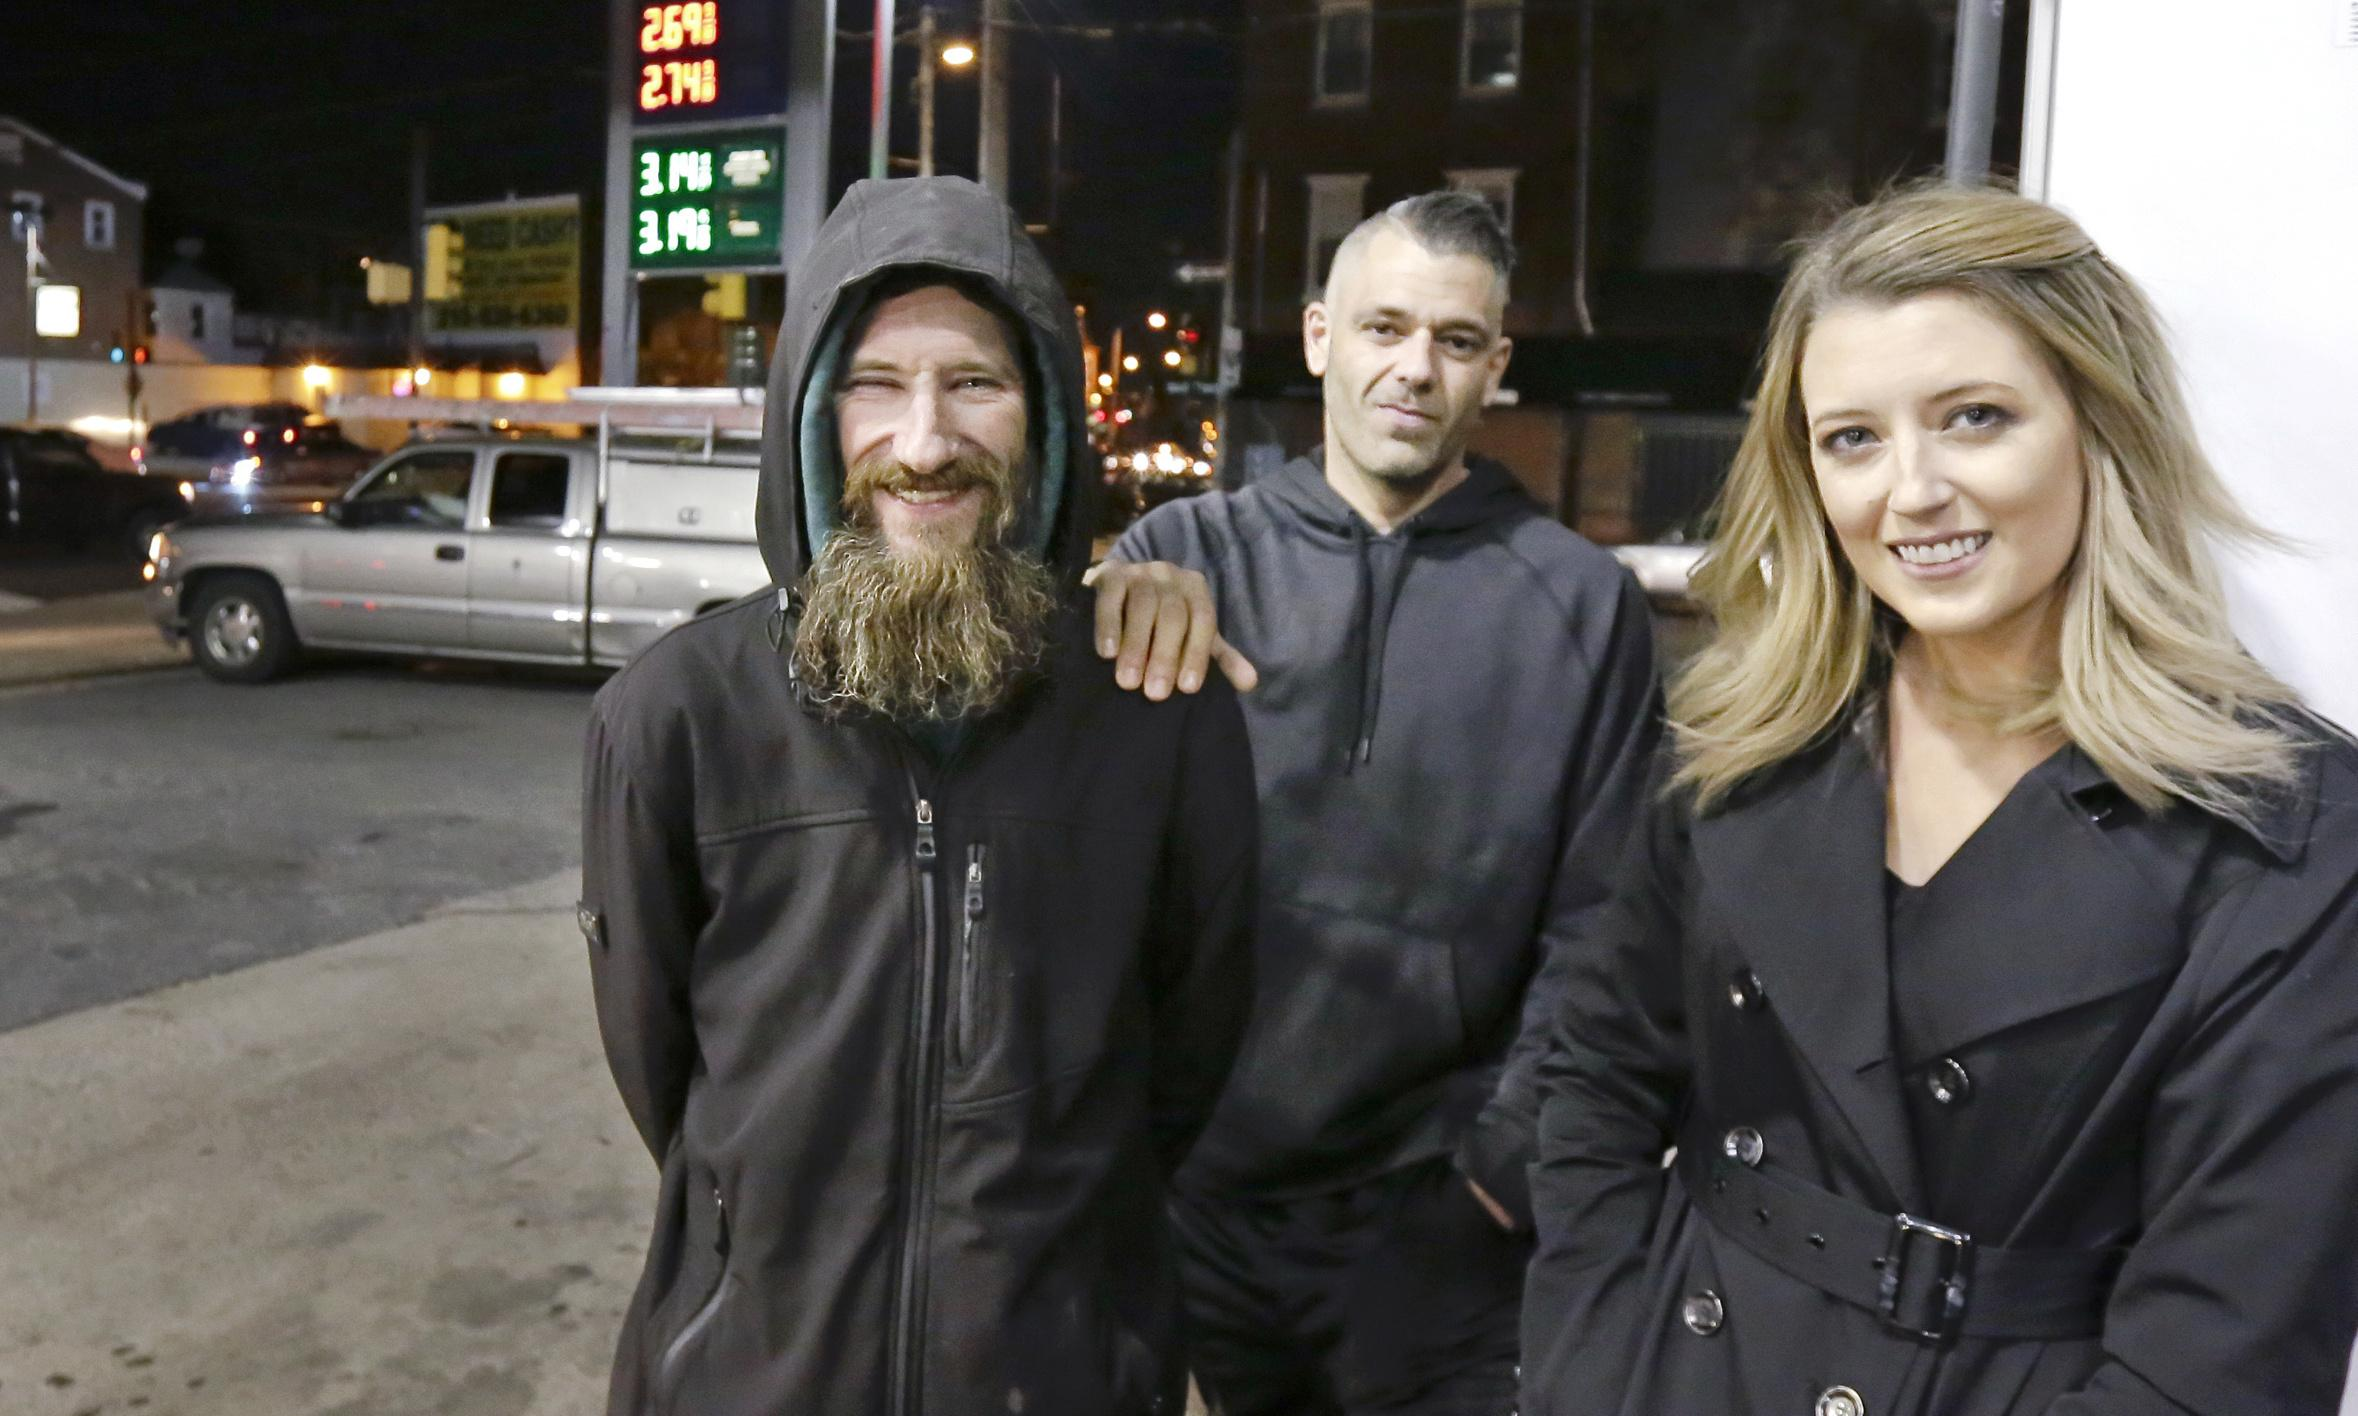 Homeless man and couple 'completely made up' viral story that raised $400,000